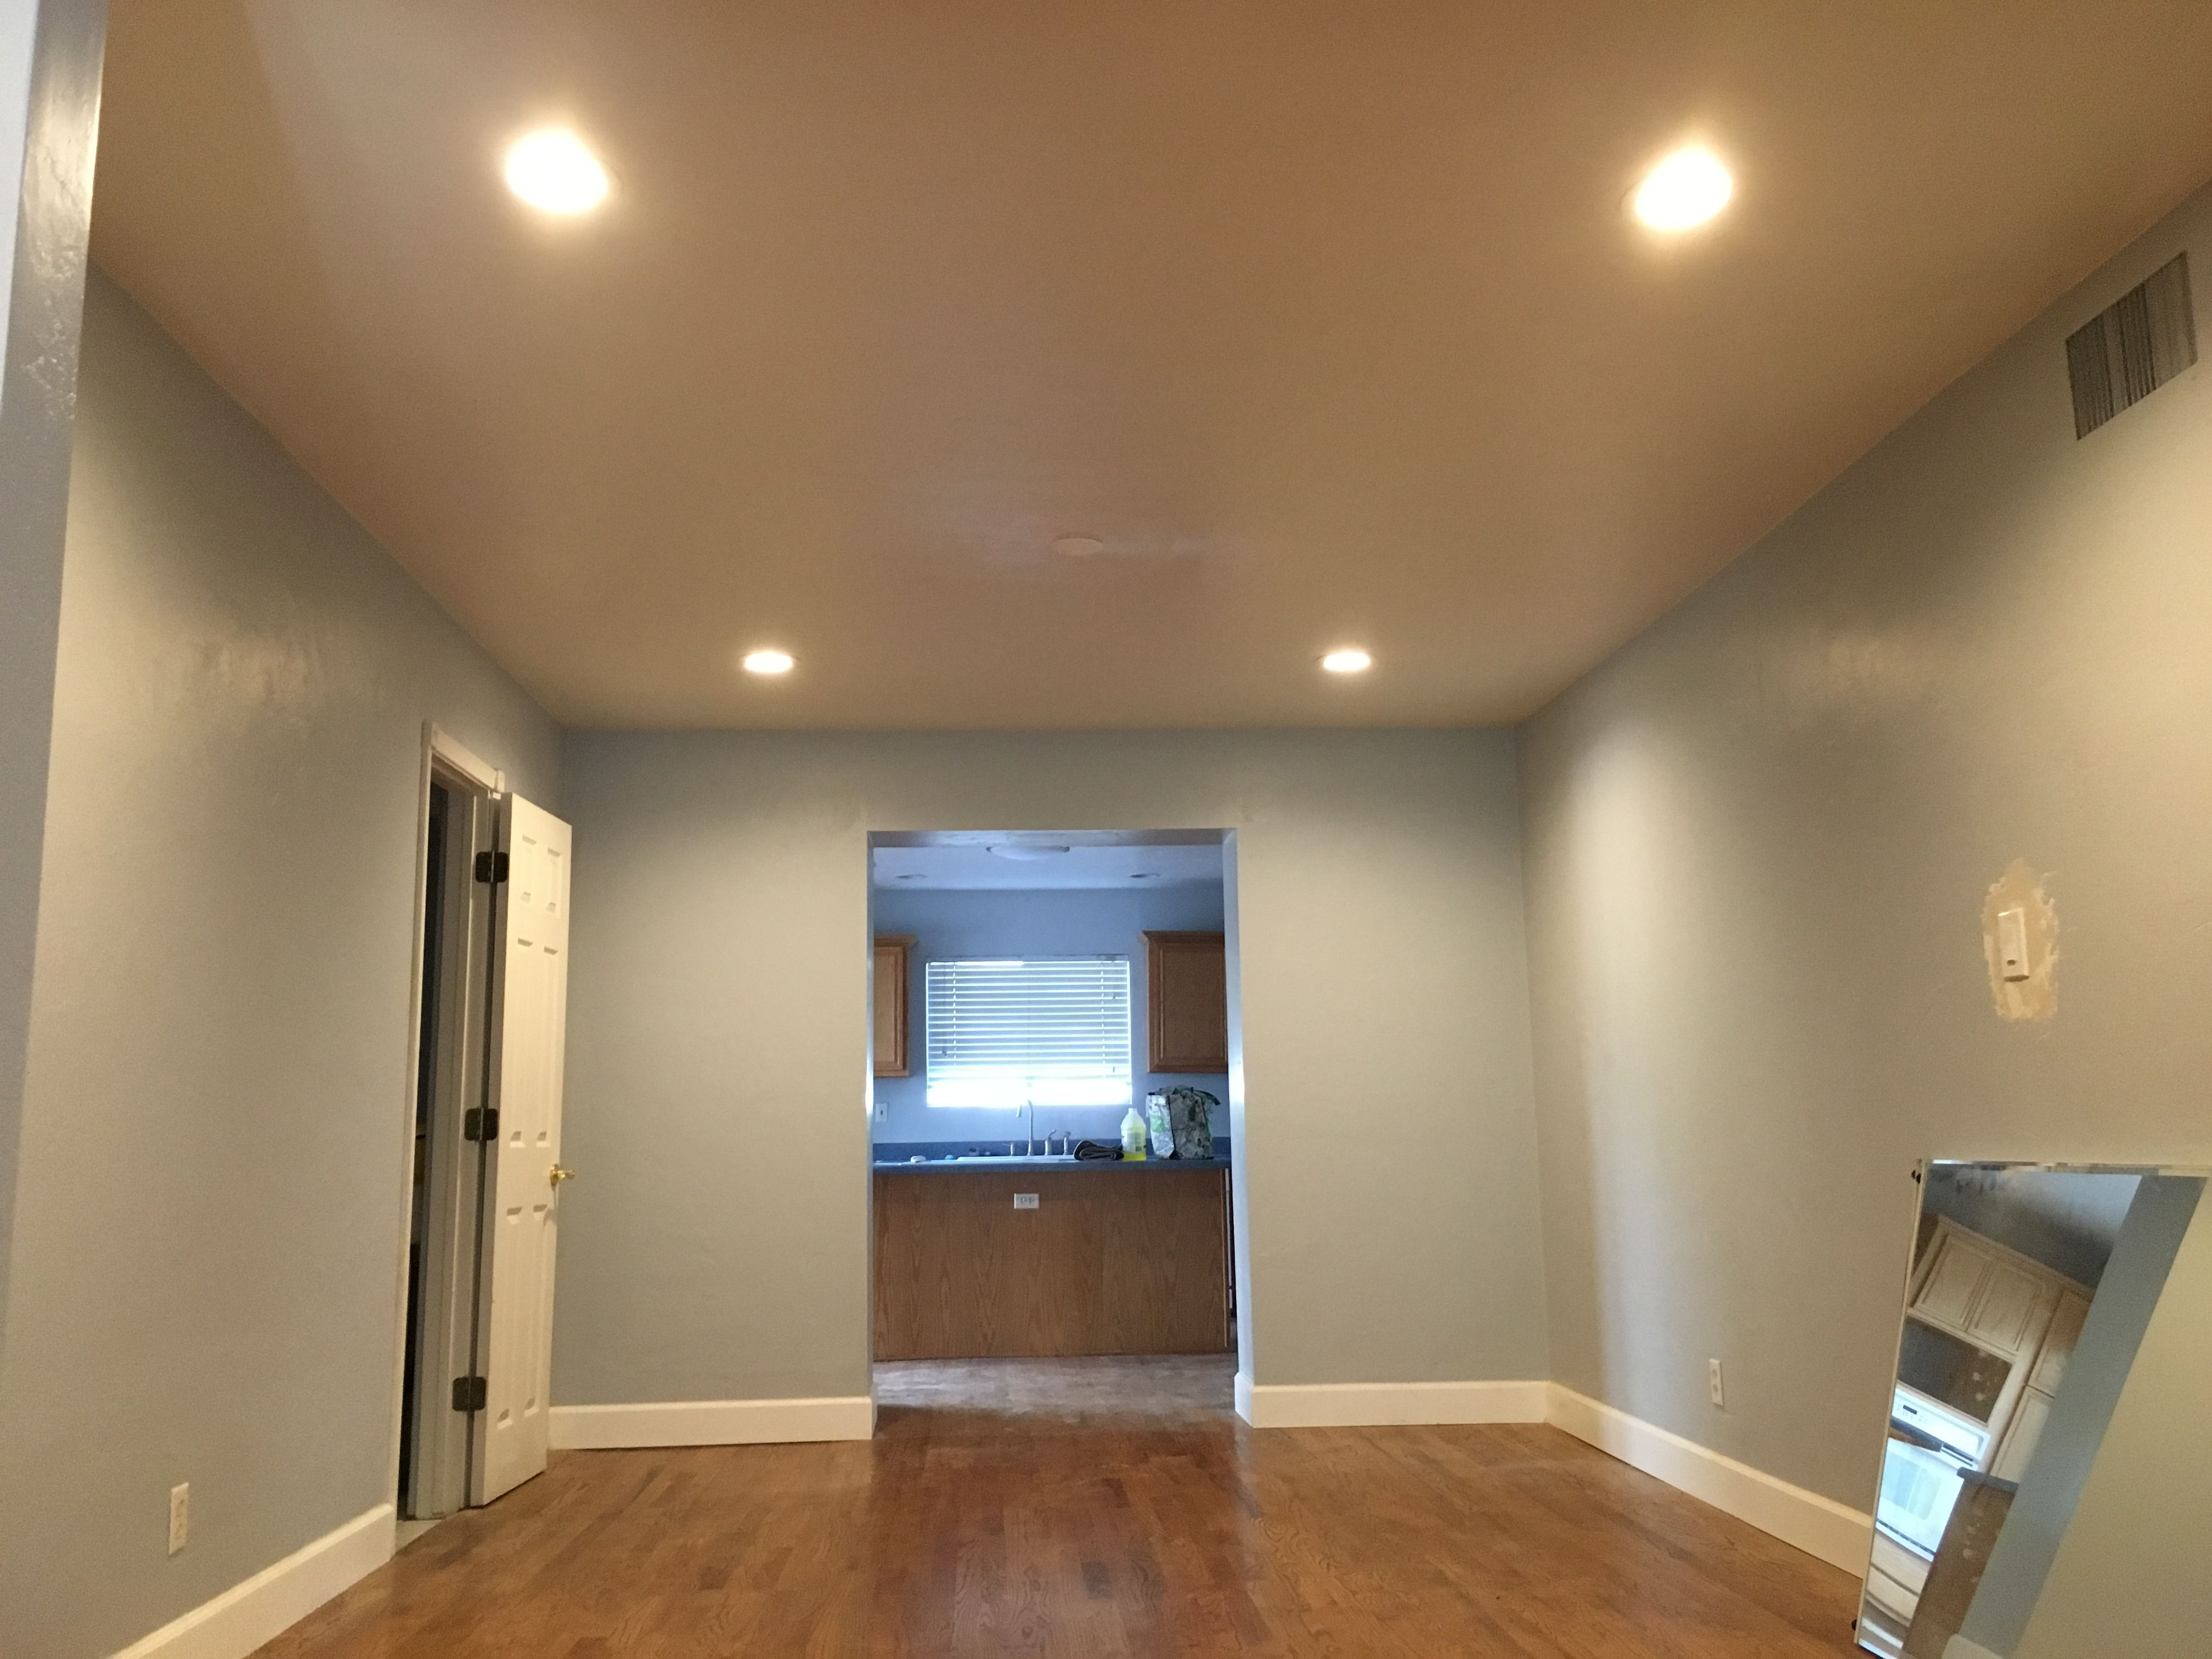 Installed 4 X 6 Inch Recessed Lights In Dining Room With A Dimmer Switch